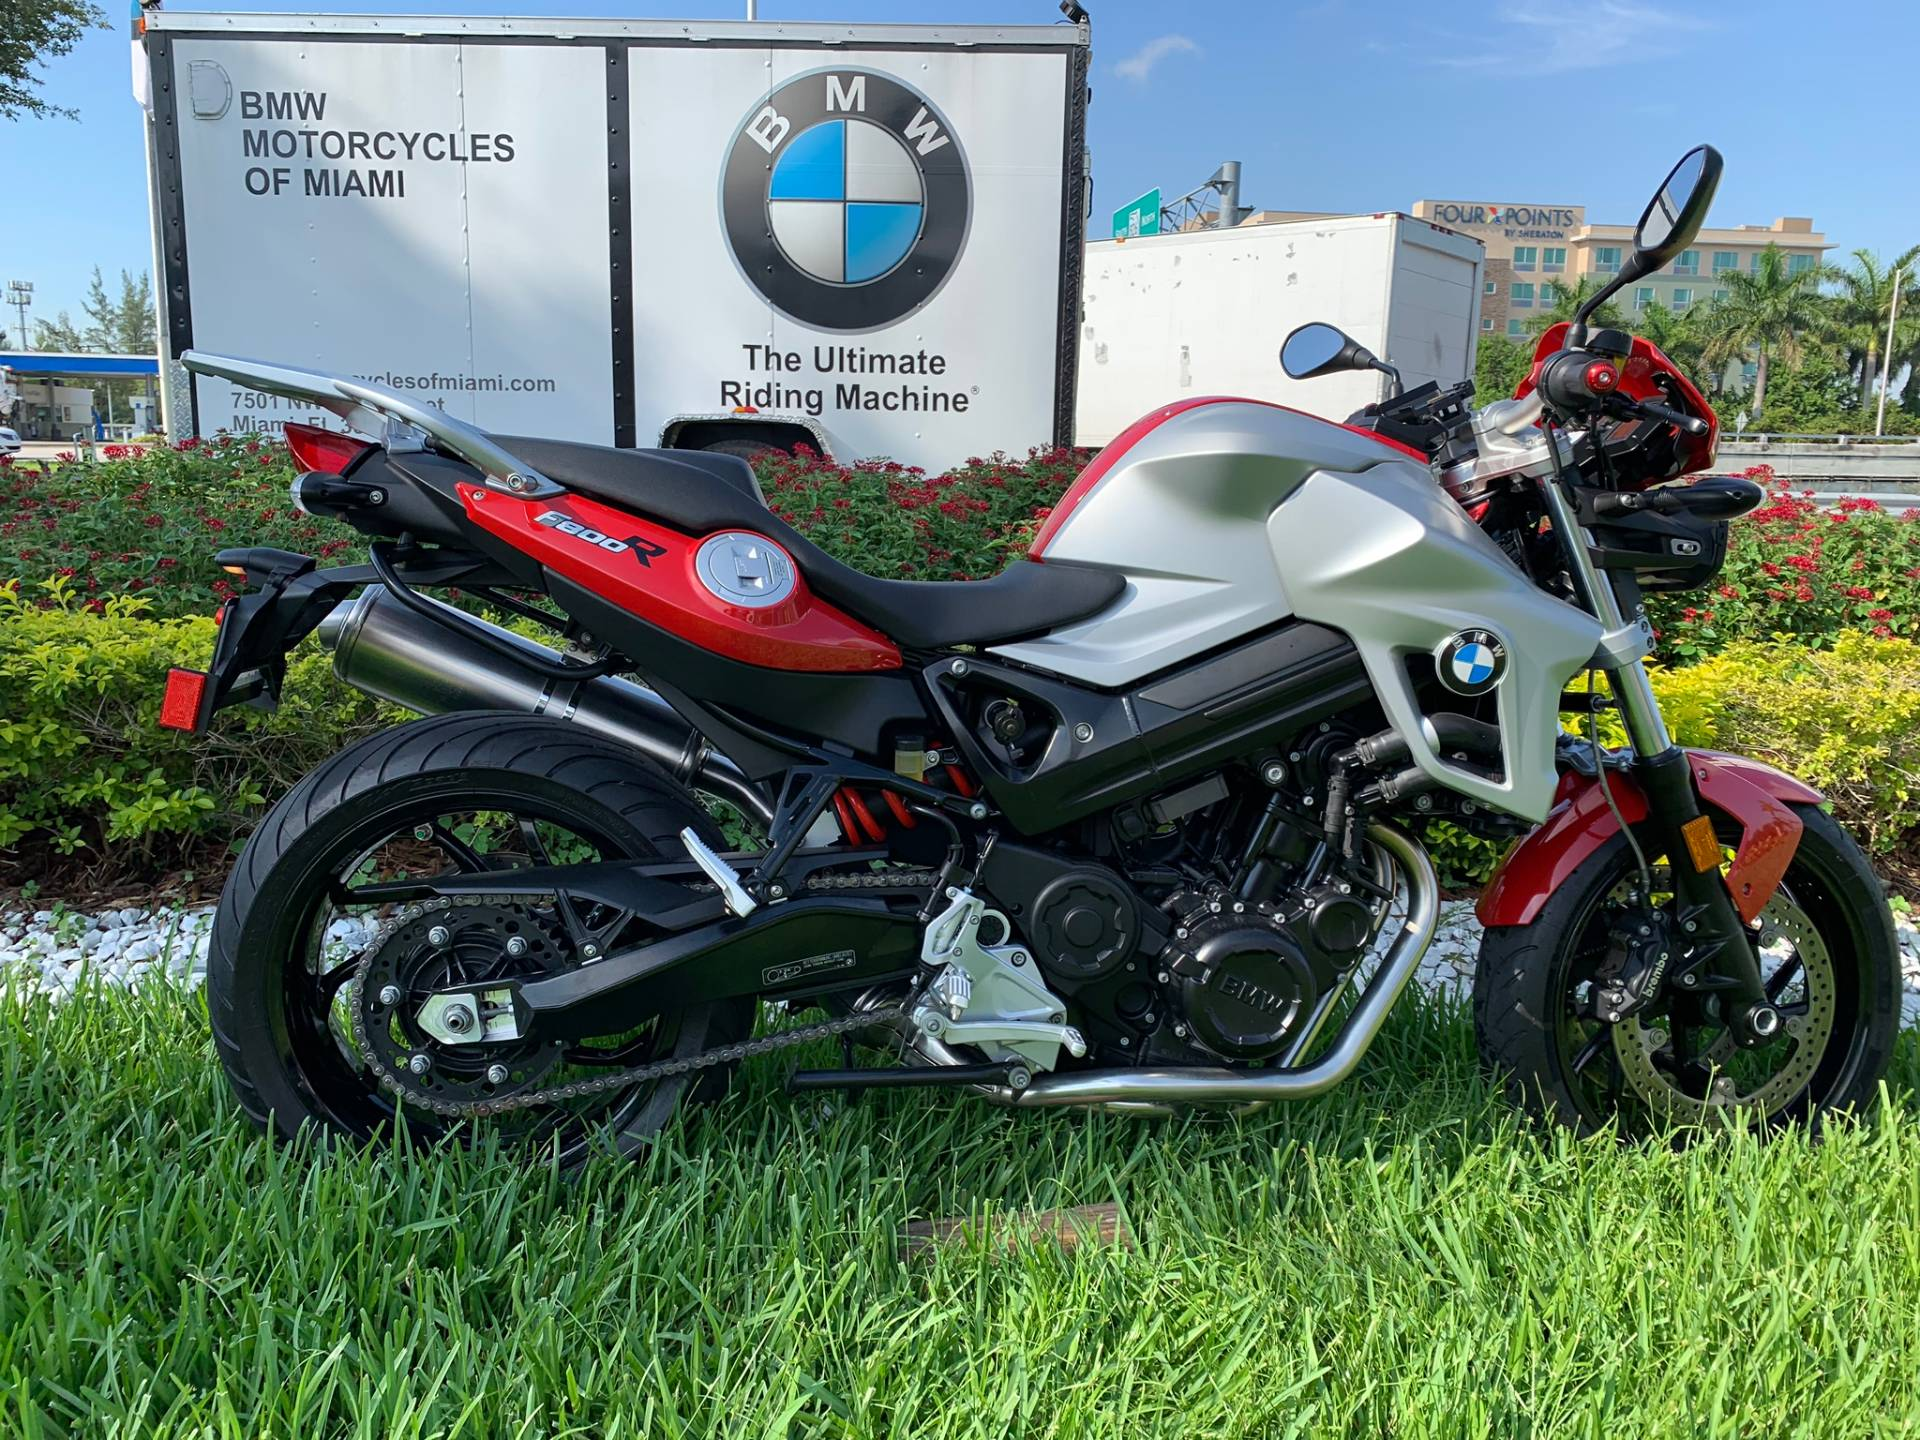 Used 2012 BMW F 800 R for sale, BMW F 800R for sale, BMW Motorcycle F800R, used BMW Roaster, Naked, 800, BMW. BMW Motorcycles of Miami, Motorcycles of Miami, Motorcycles Miami, New Motorcycles, Used Motorcycles, pre-owned. #BMWMotorcyclesOfMiami #MotorcyclesOfMiami. - Photo 24